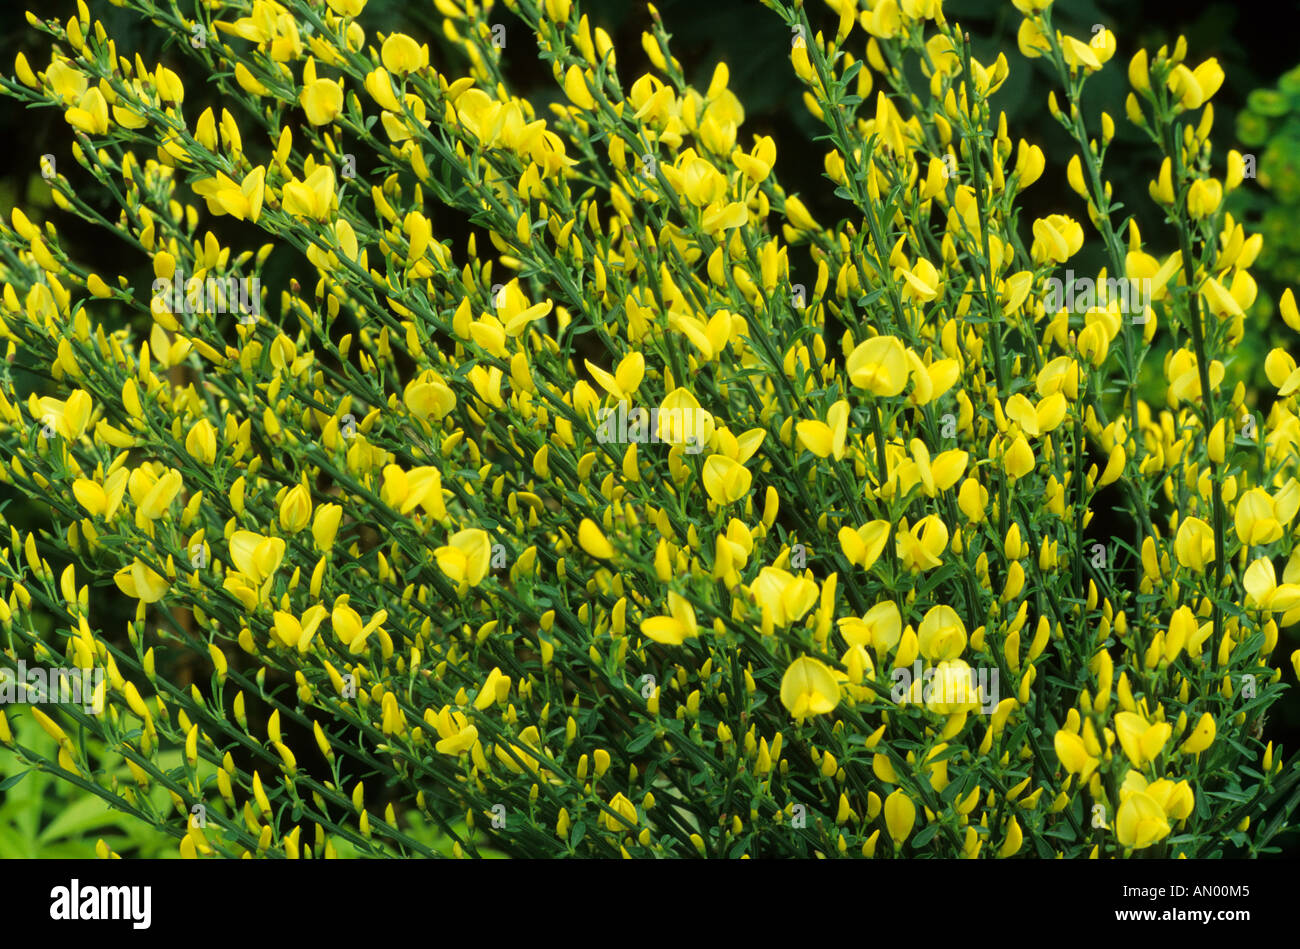 cytisus x praecox allgold broom yellow flowers garden plant rh alamy com